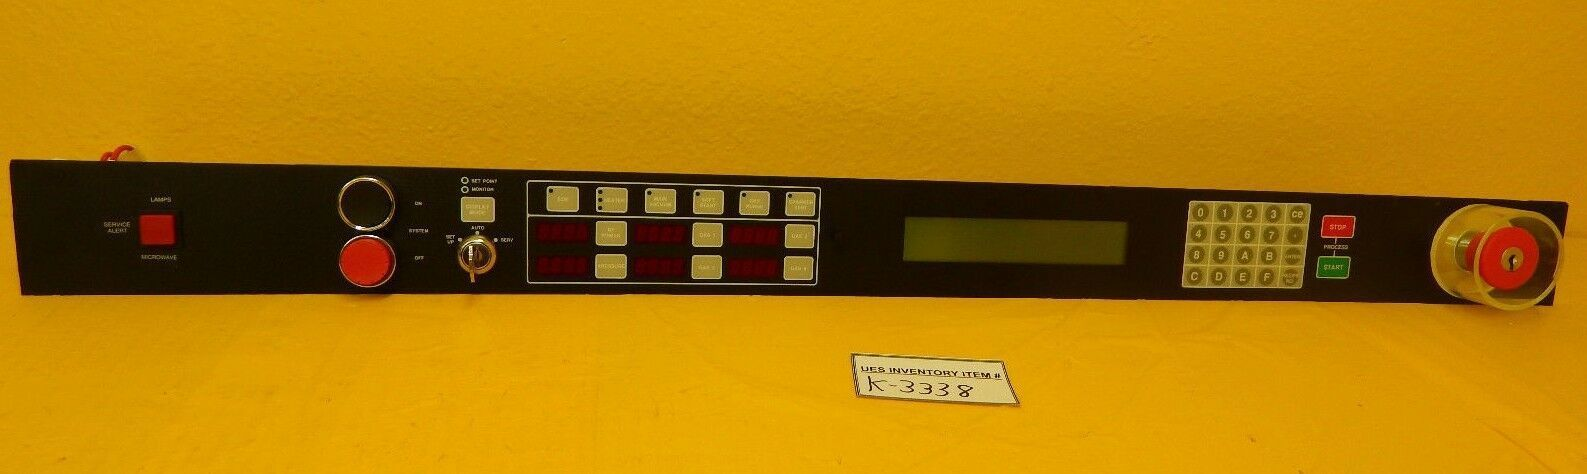 GaSonics A95-108-02 LED and Interface Control Panel PCB Rev. J A89-013-01 Used